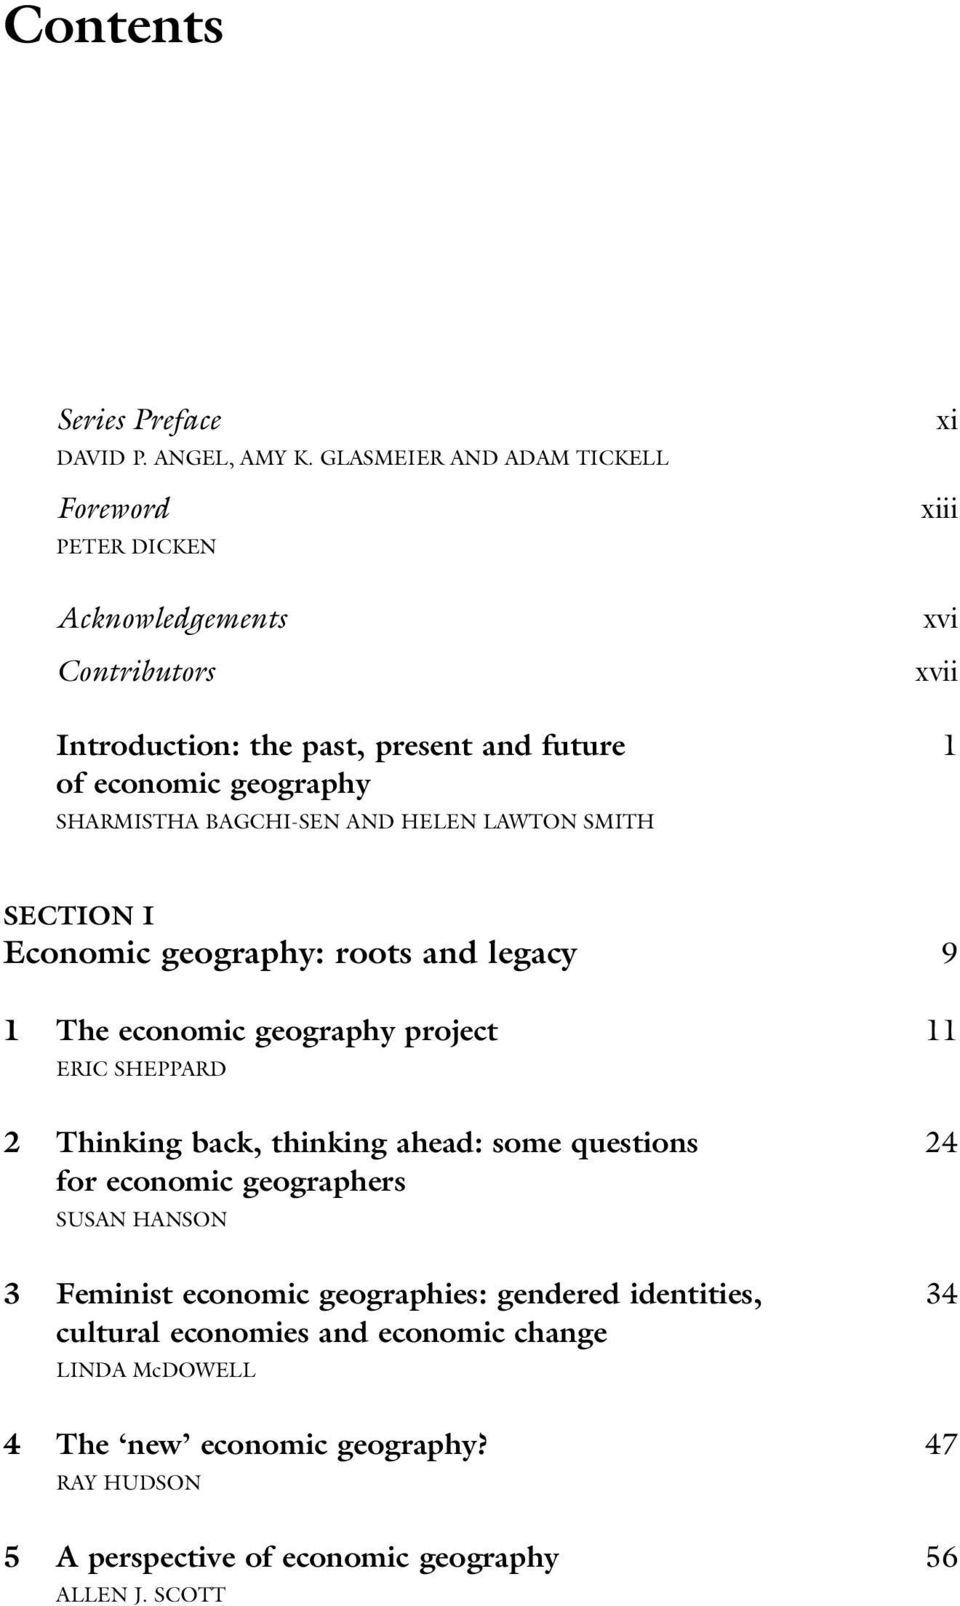 SHARMISTHA BAGCHI-SEN AND HELEN LAWTON SMITH SECTION I Economic geography: roots and legacy 9 1 The economic geography project 11 ERIC SHEPPARD 2 Thinking back,